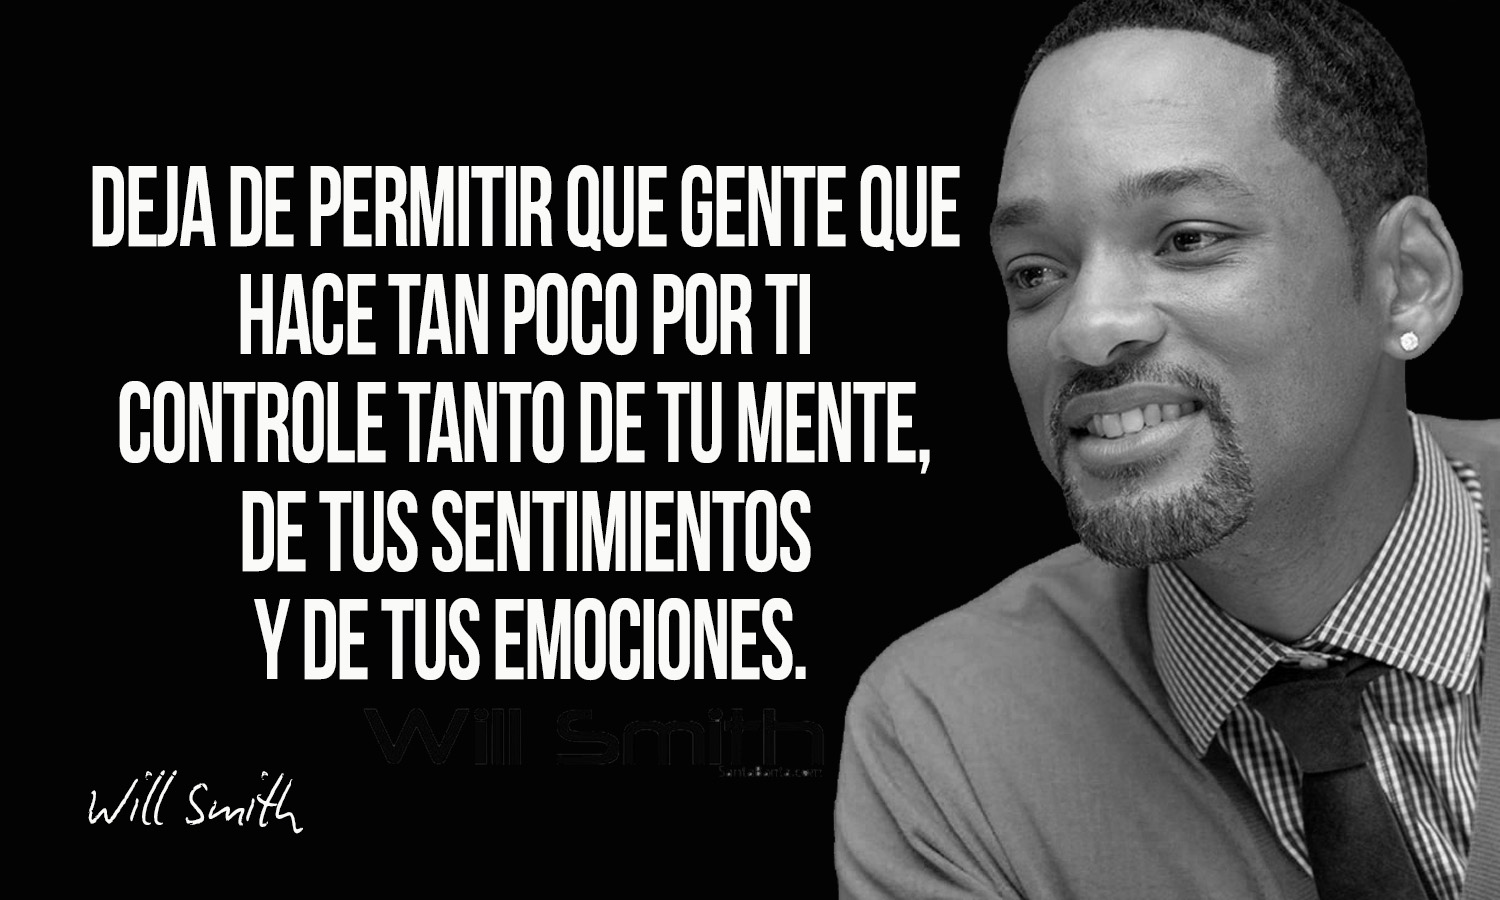 Frases Celebres William Shakespeare 10 Frases Celebres Del Famoso Actor Will Smith